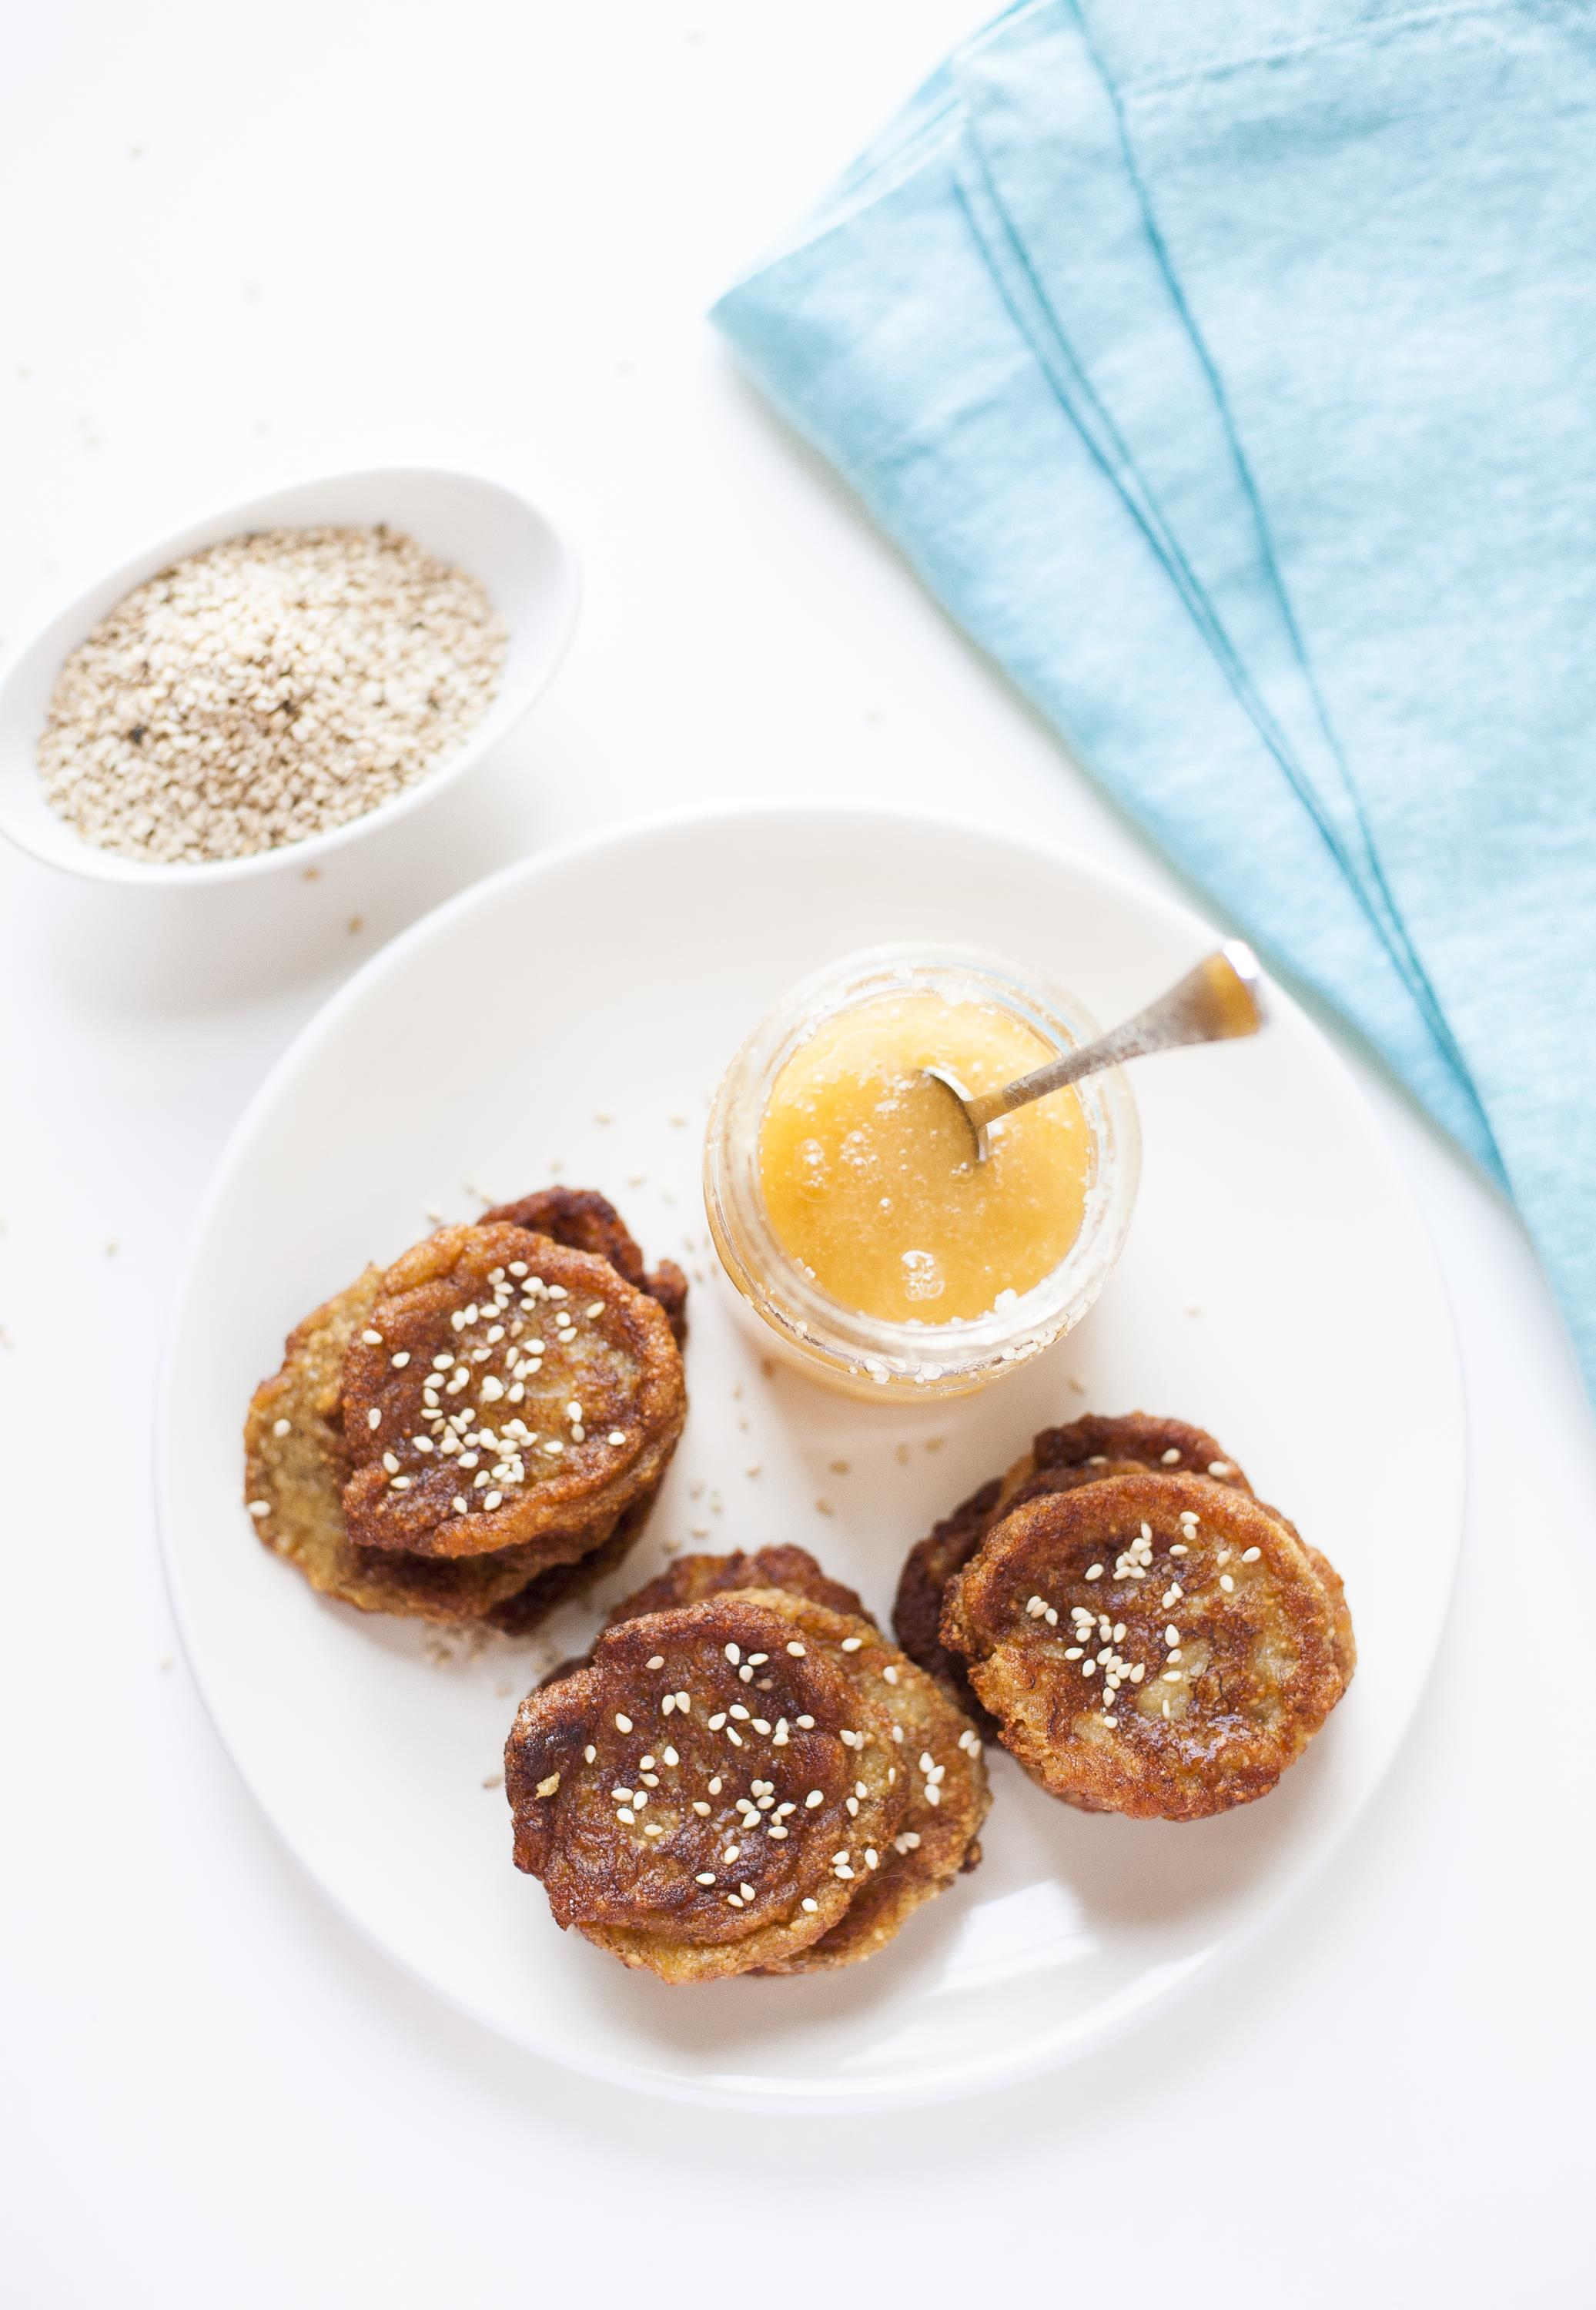 Malagasy Banana Fritters from Paleo Planet by Becky Winkler